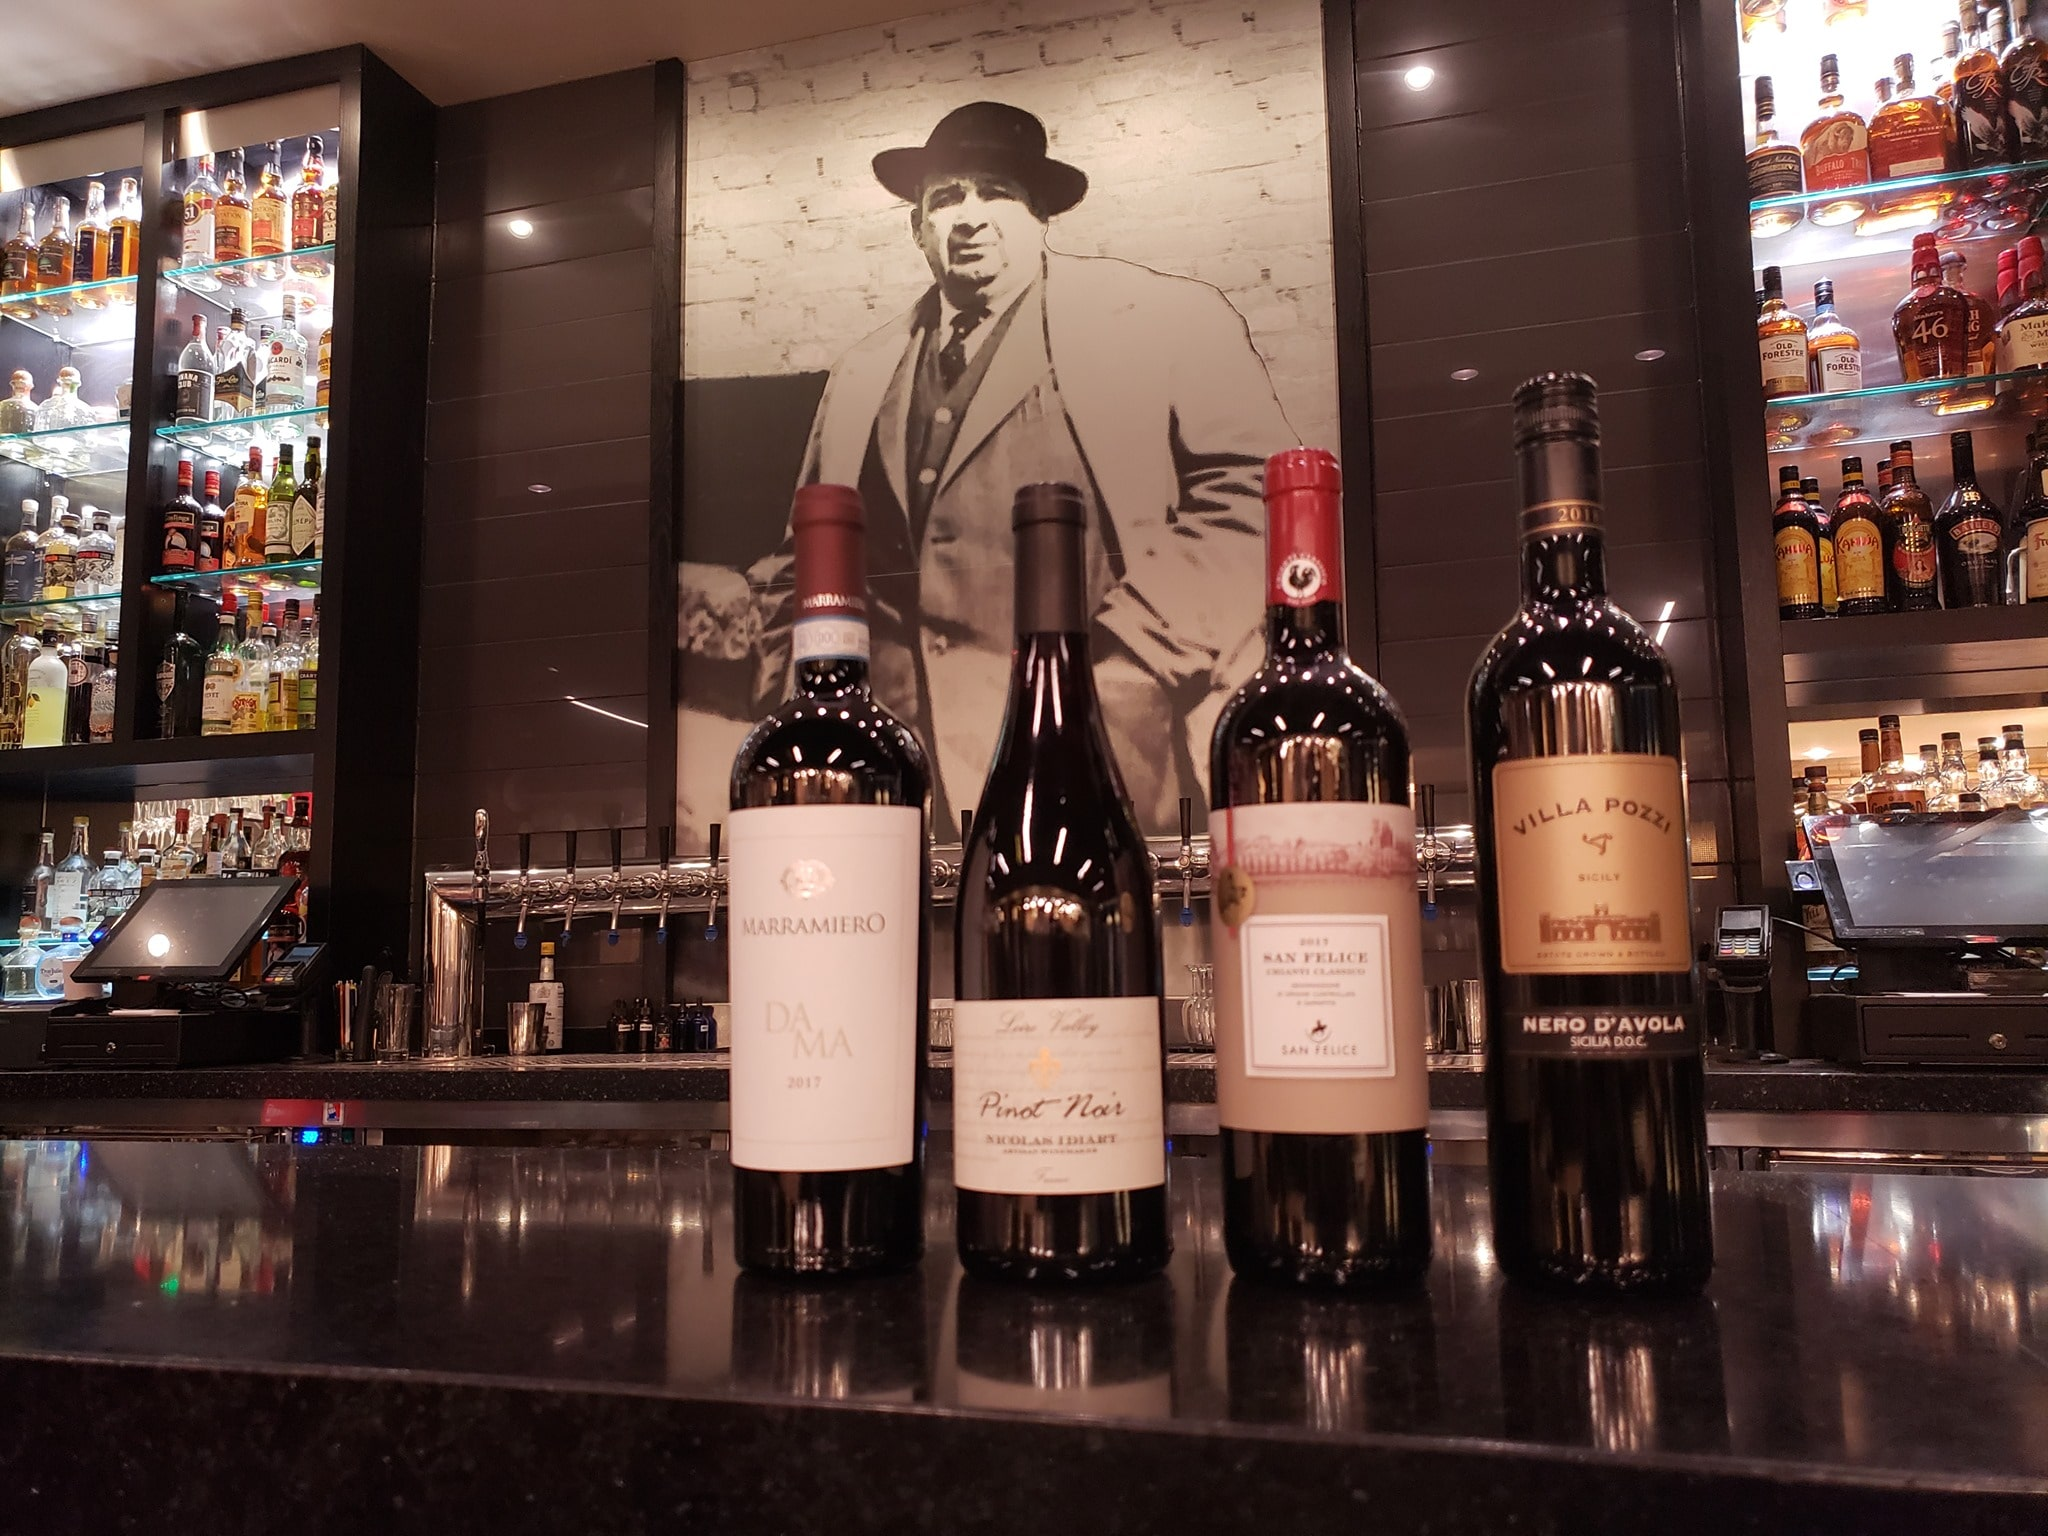 this photo shows a variety of wines that can be purchased to go from Mootz Pizzeria & Bar in Detroit.